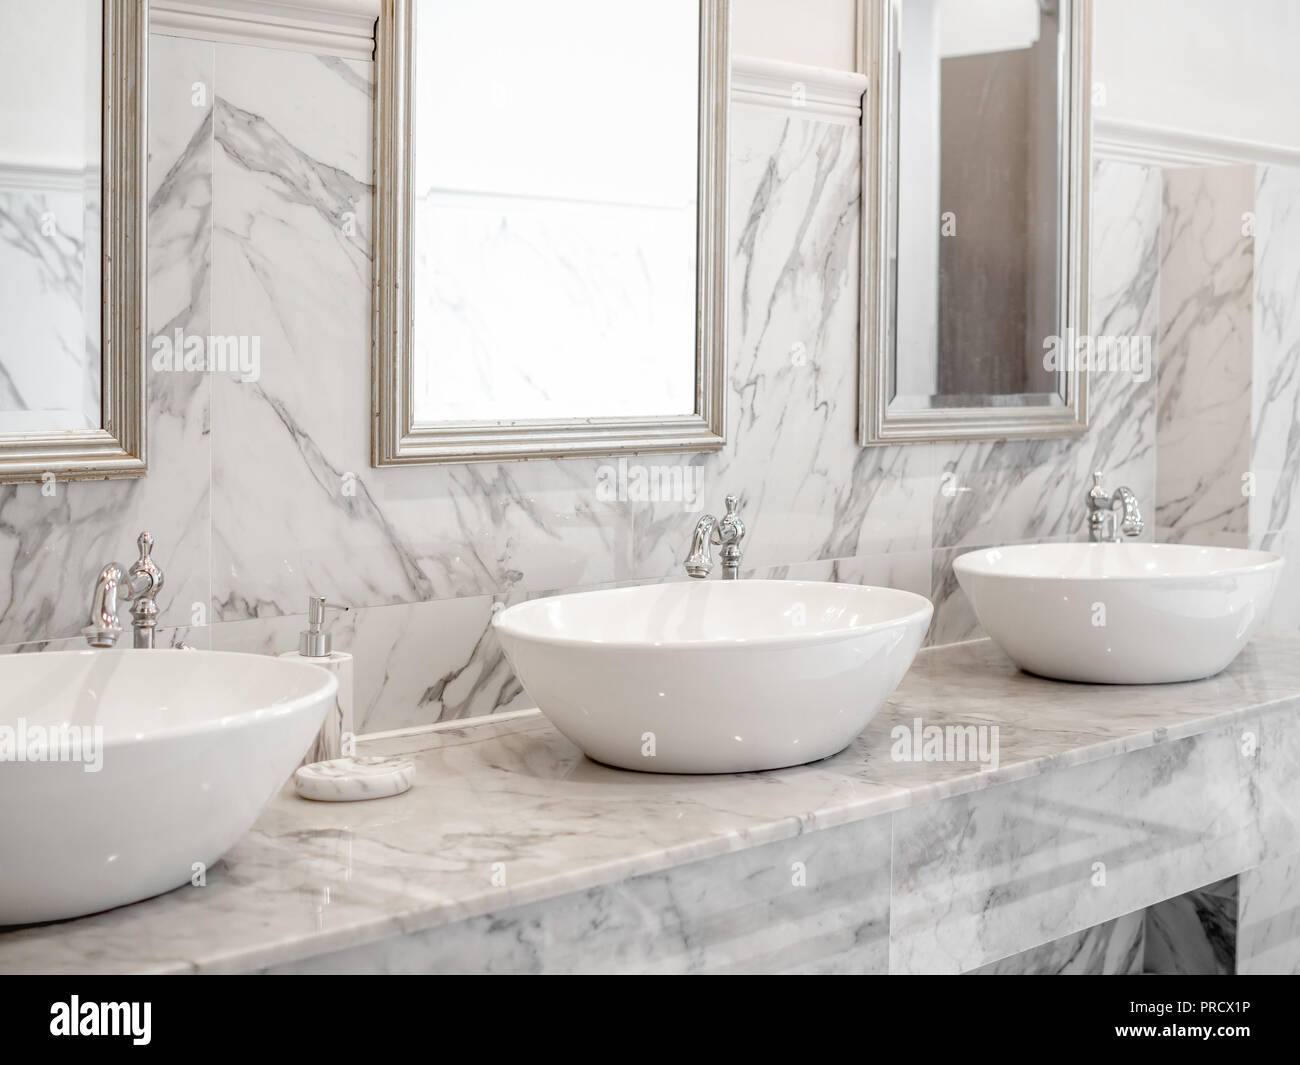 White Luxury Sink In Bathroom White Modern Interior Design Marble Bathroom With Three Round Wash Basin Aluminium Faucets And Mirrors On The Wall Stock Photo Alamy